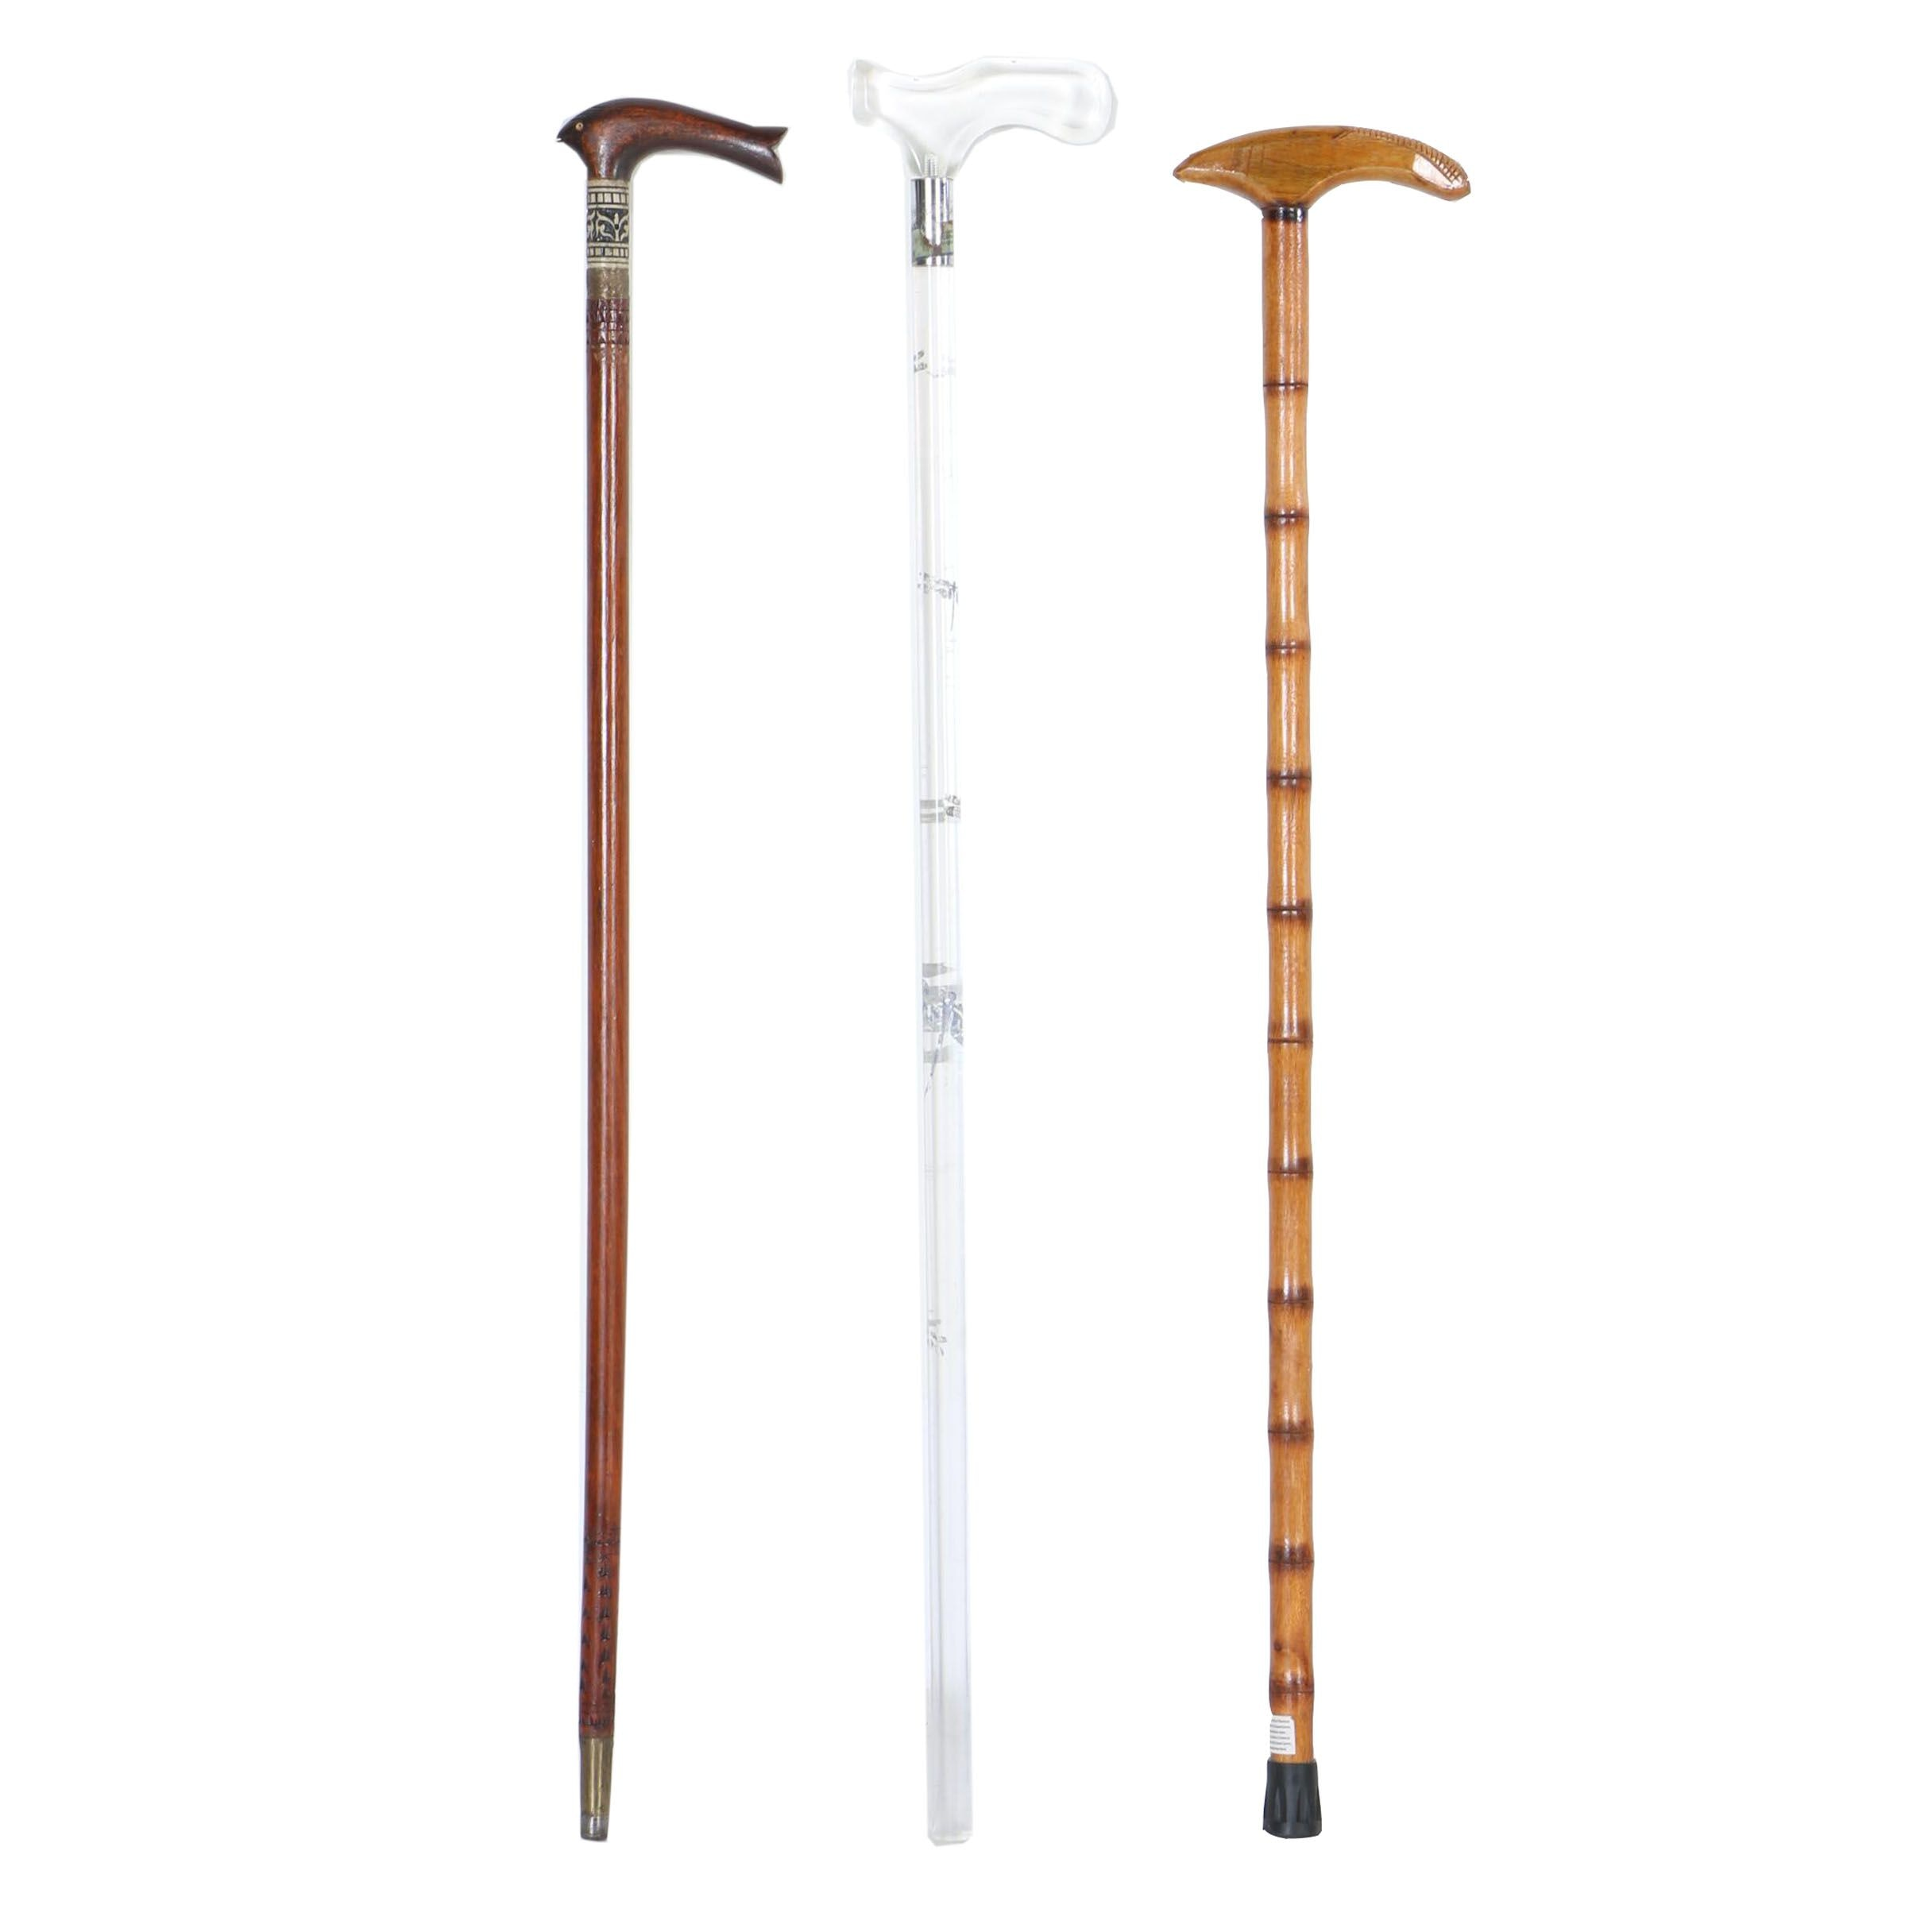 Collection of Walking Sticks